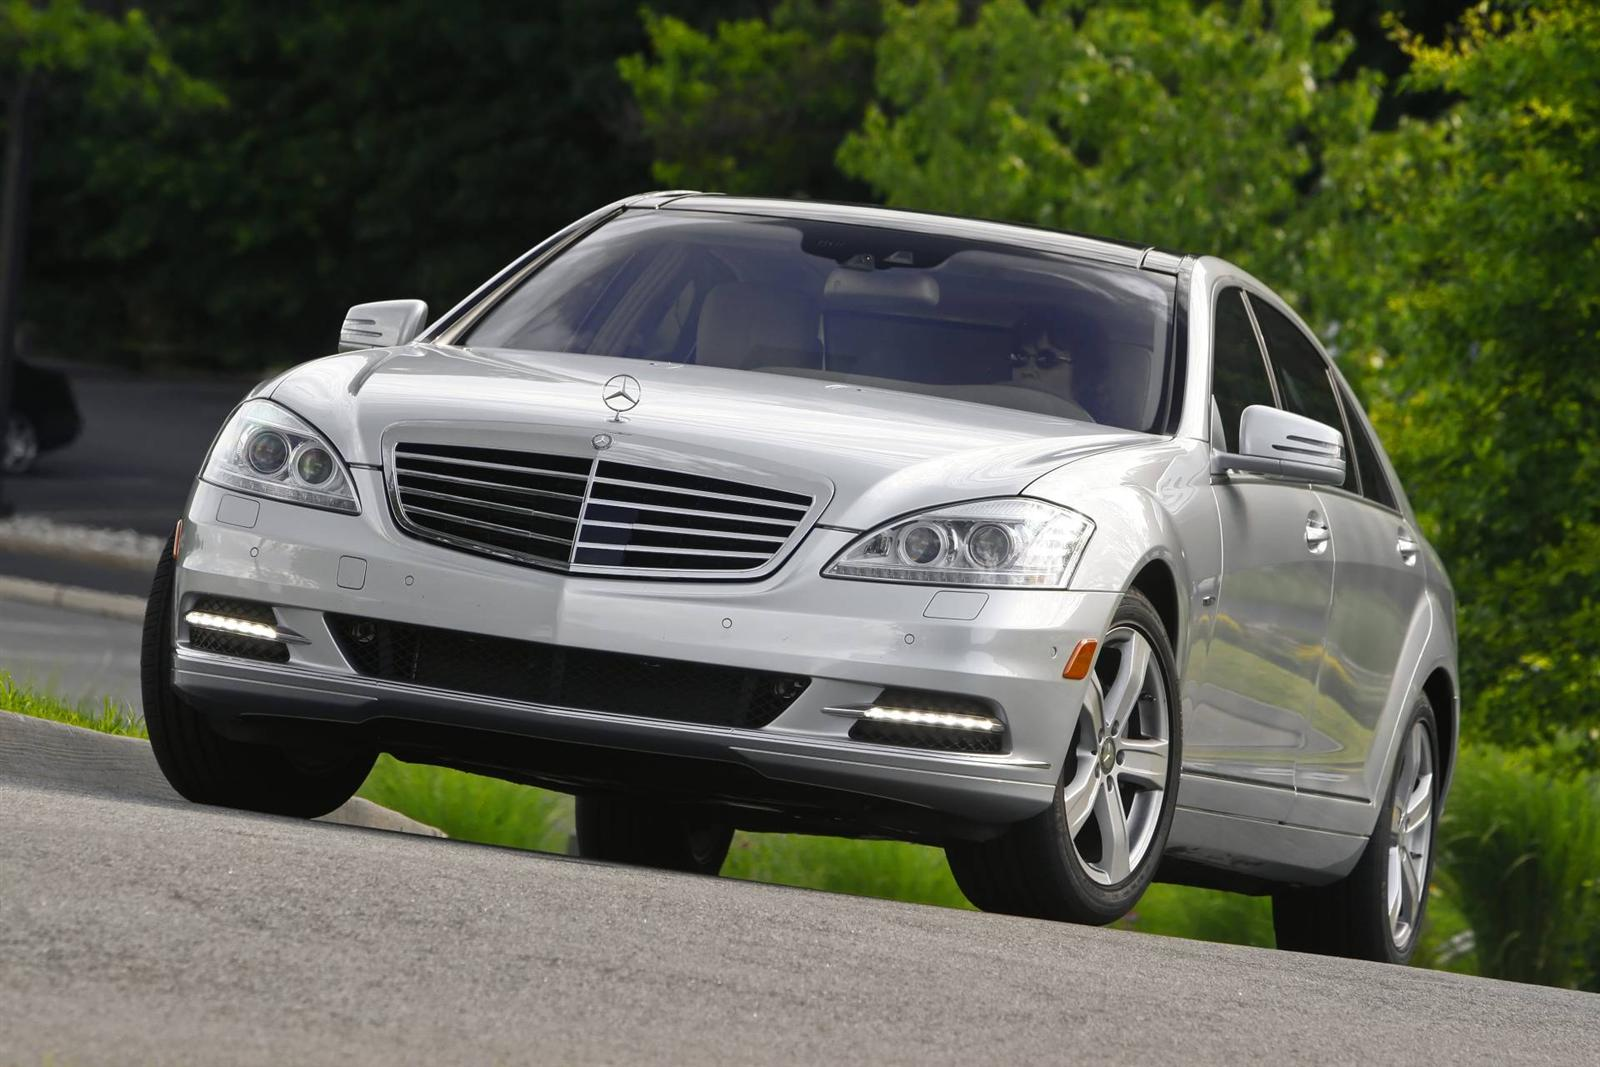 2013 mercedes benz s400 hybrid image for 2013 mercedes benz s400 hybrid